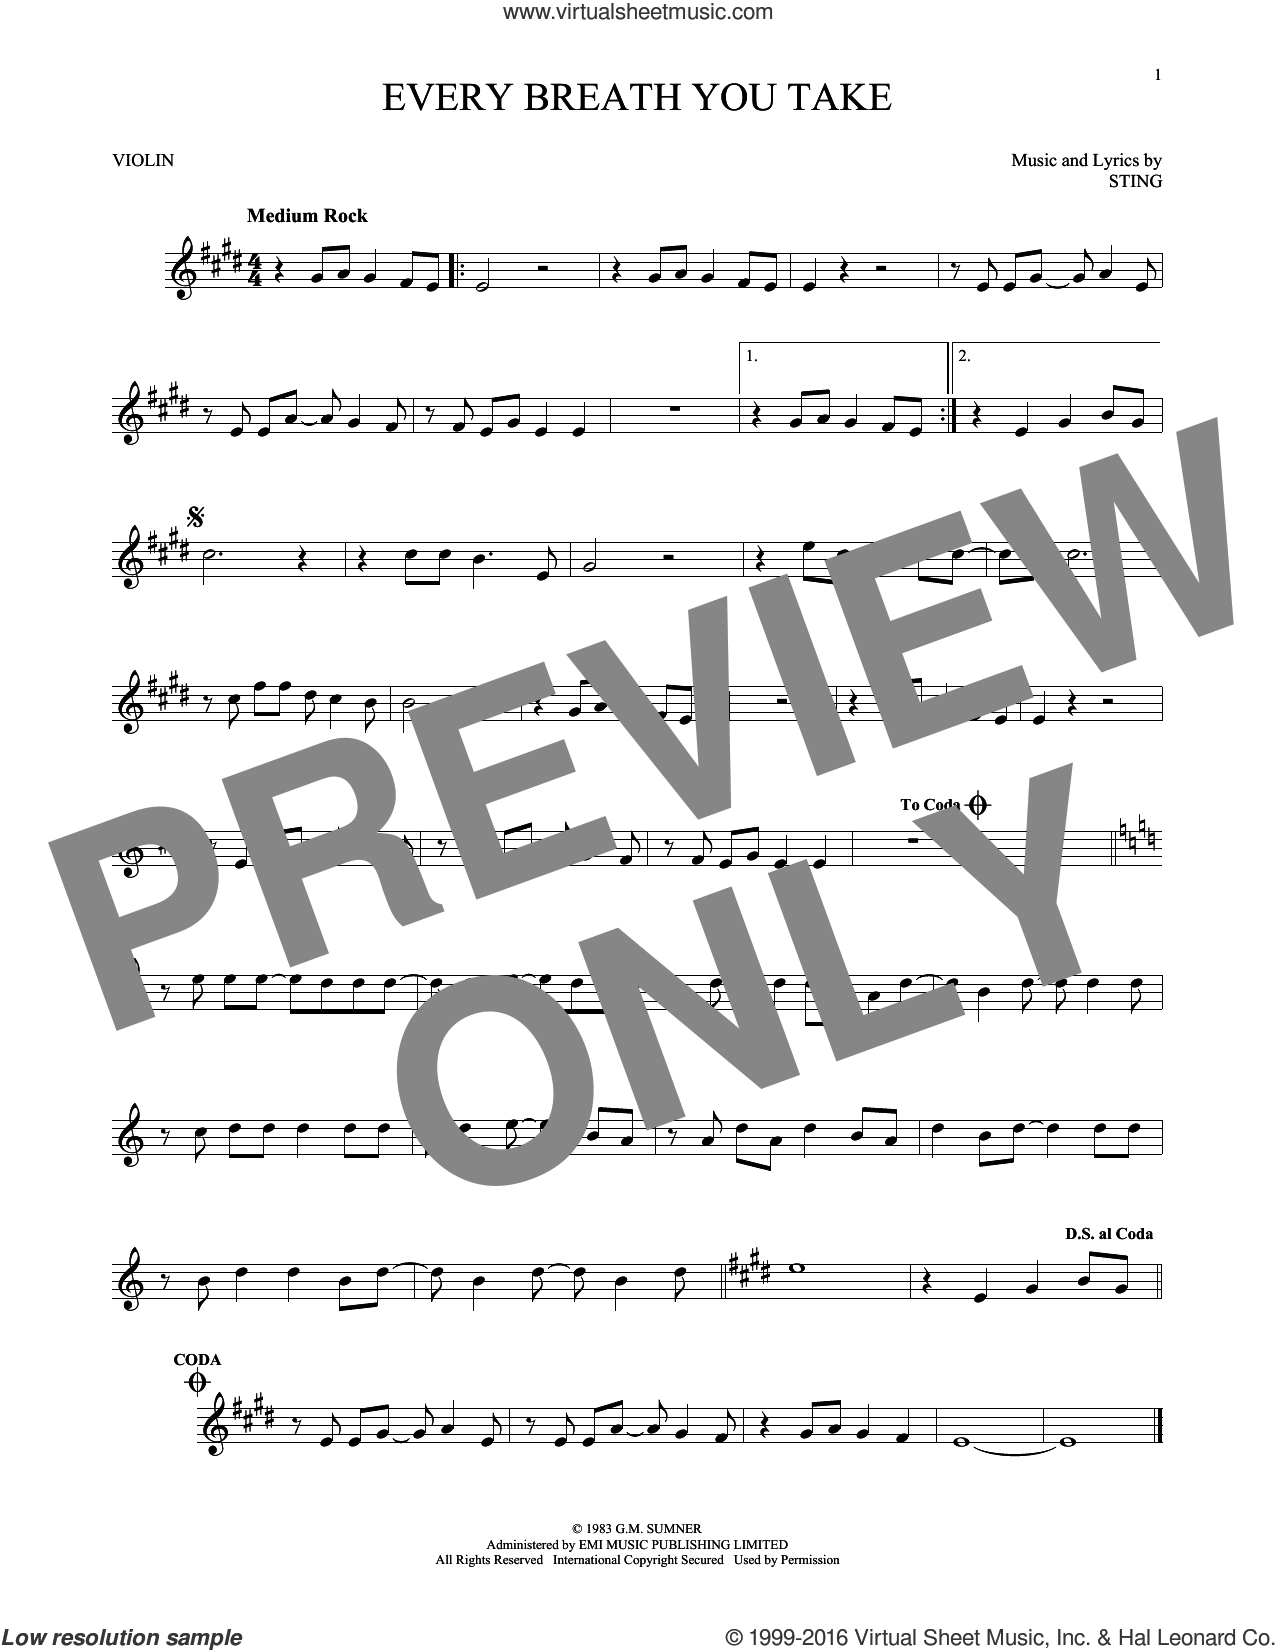 Every Breath You Take sheet music for violin solo by The Police and Sting. Score Image Preview.